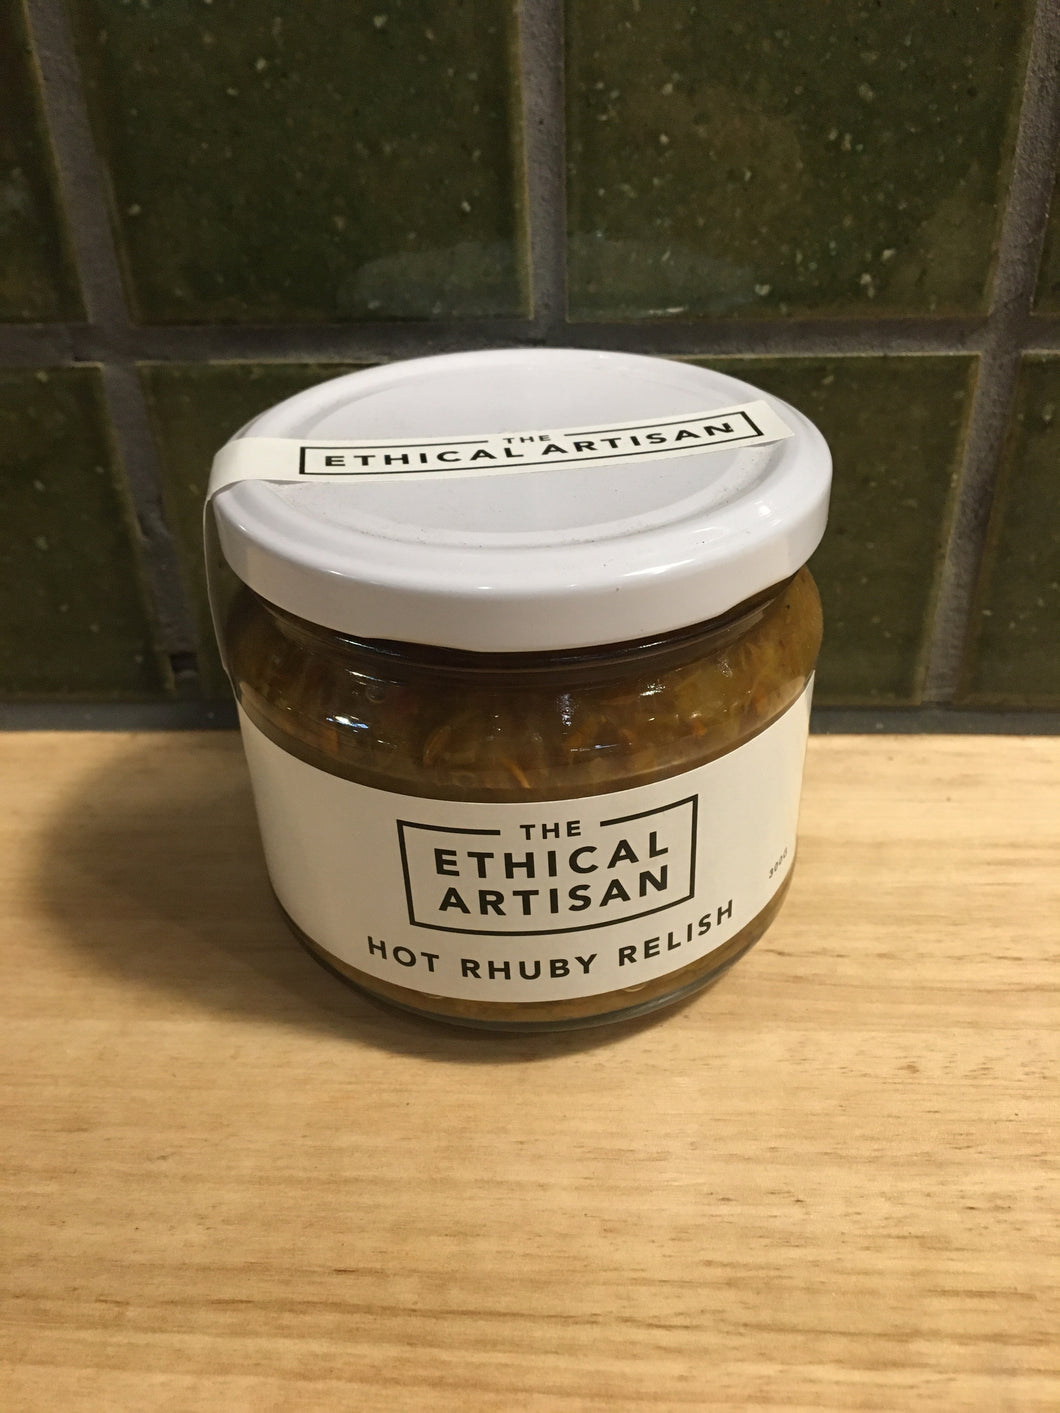 The Ethical Artisan Hot Rhuby Relish 300g